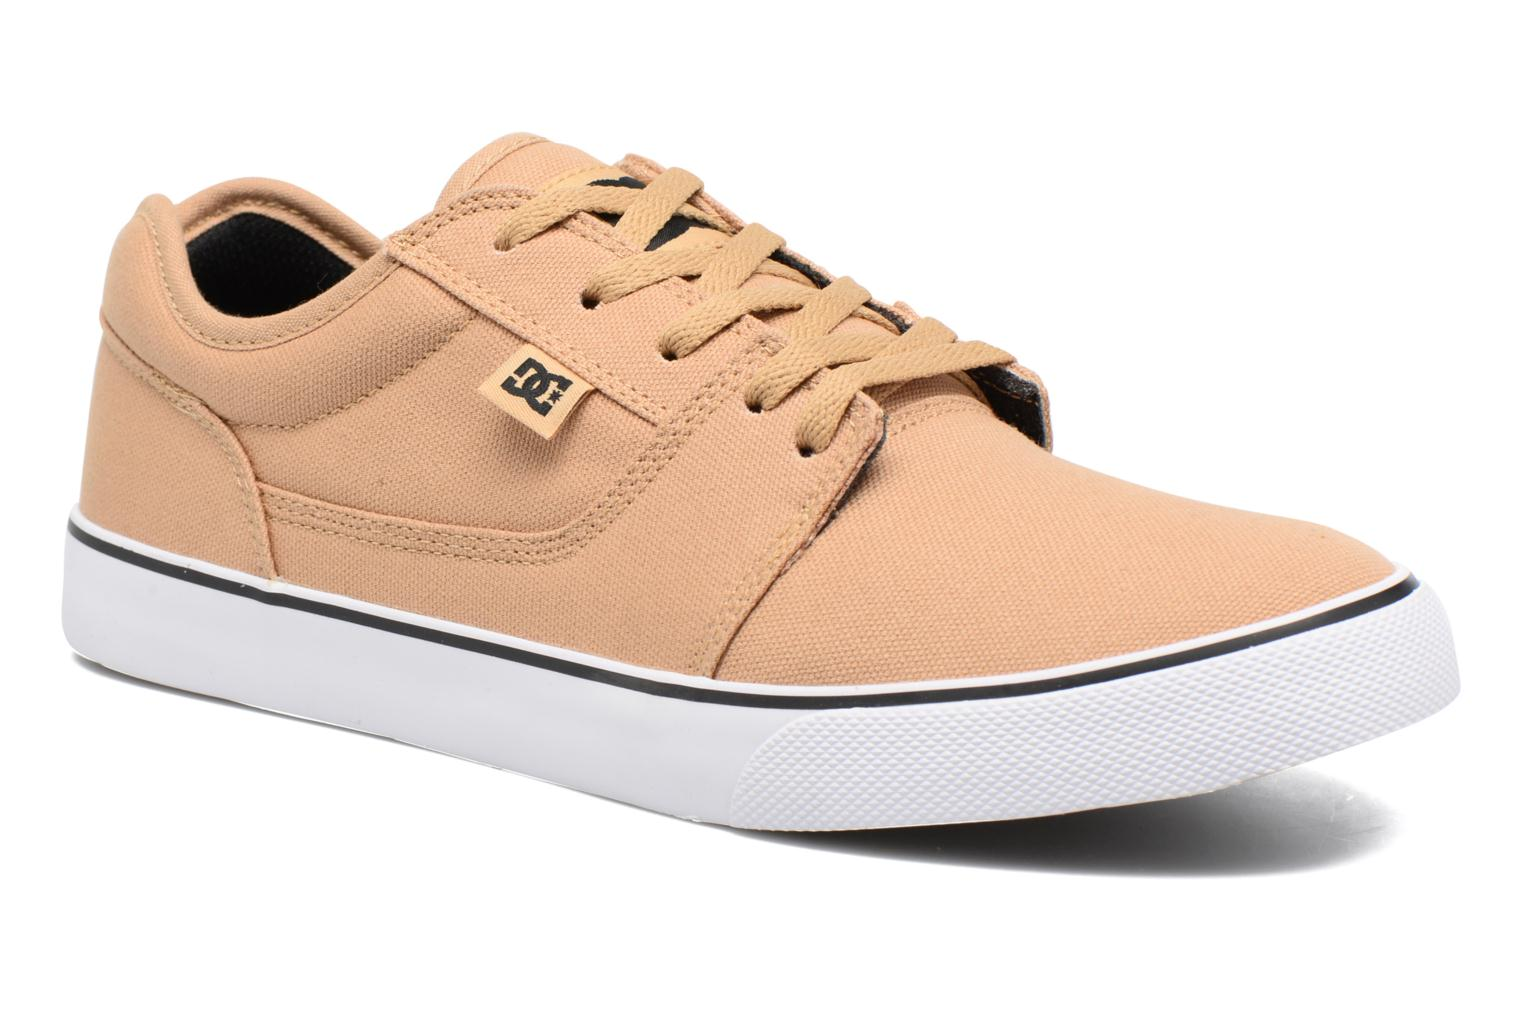 Tonik TX Camel/black